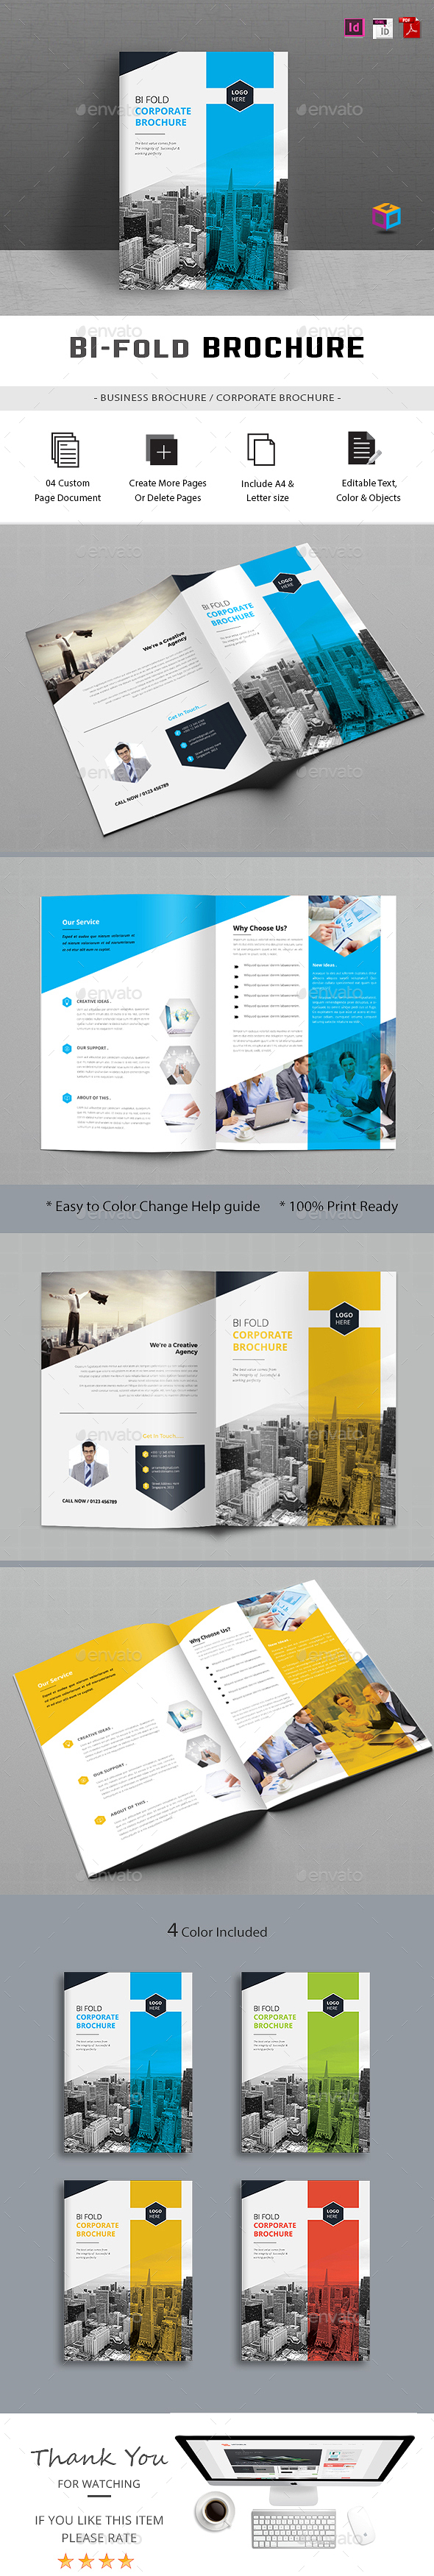 Bifold Brochure Template InDesign INDD … | Pinteres…